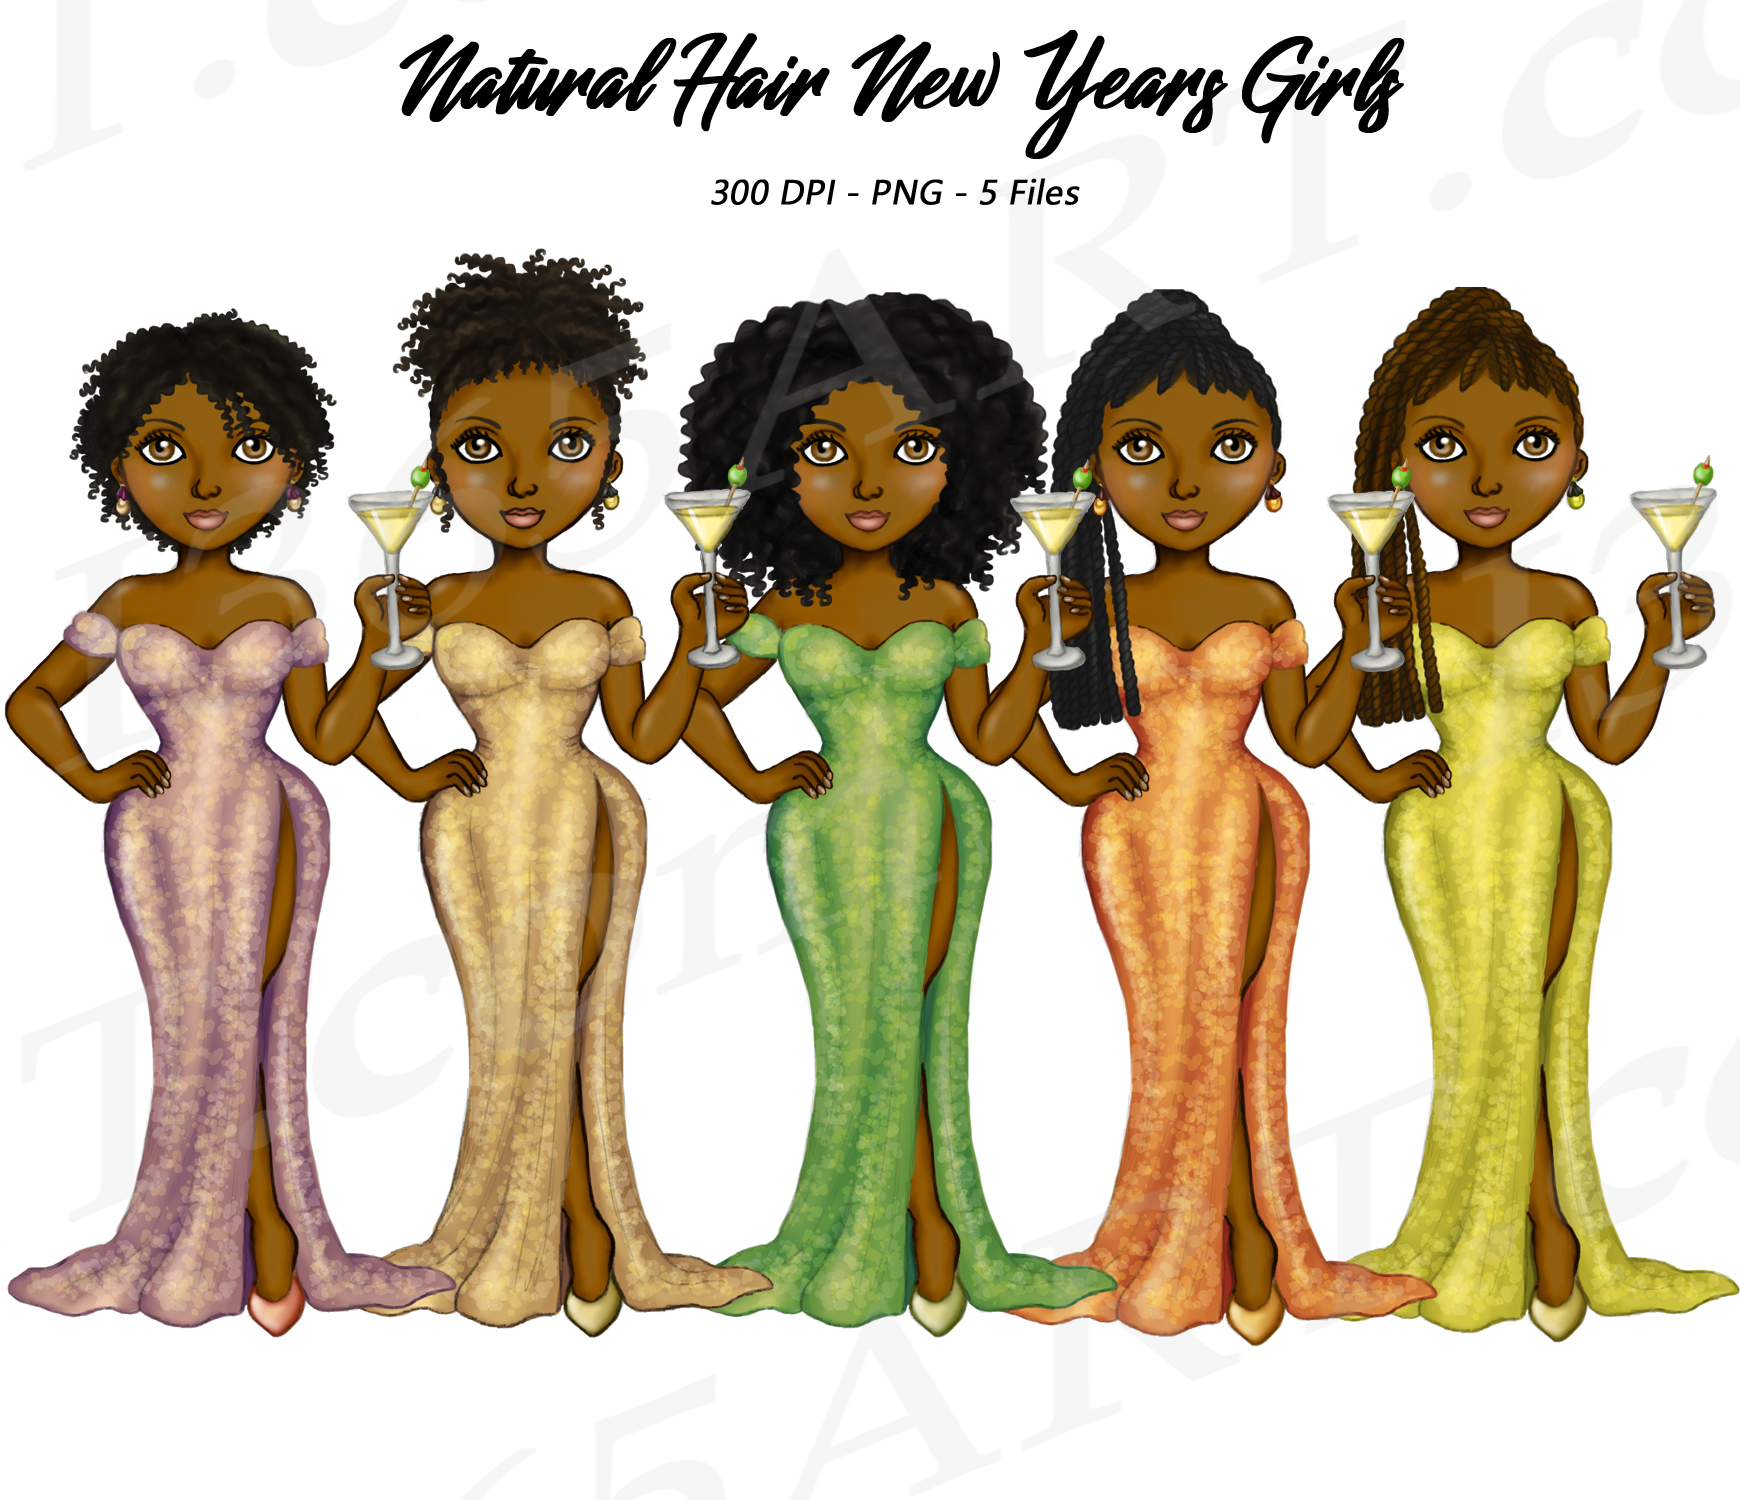 New Years Eve Clipart Natural Hair Fashion Dolls.